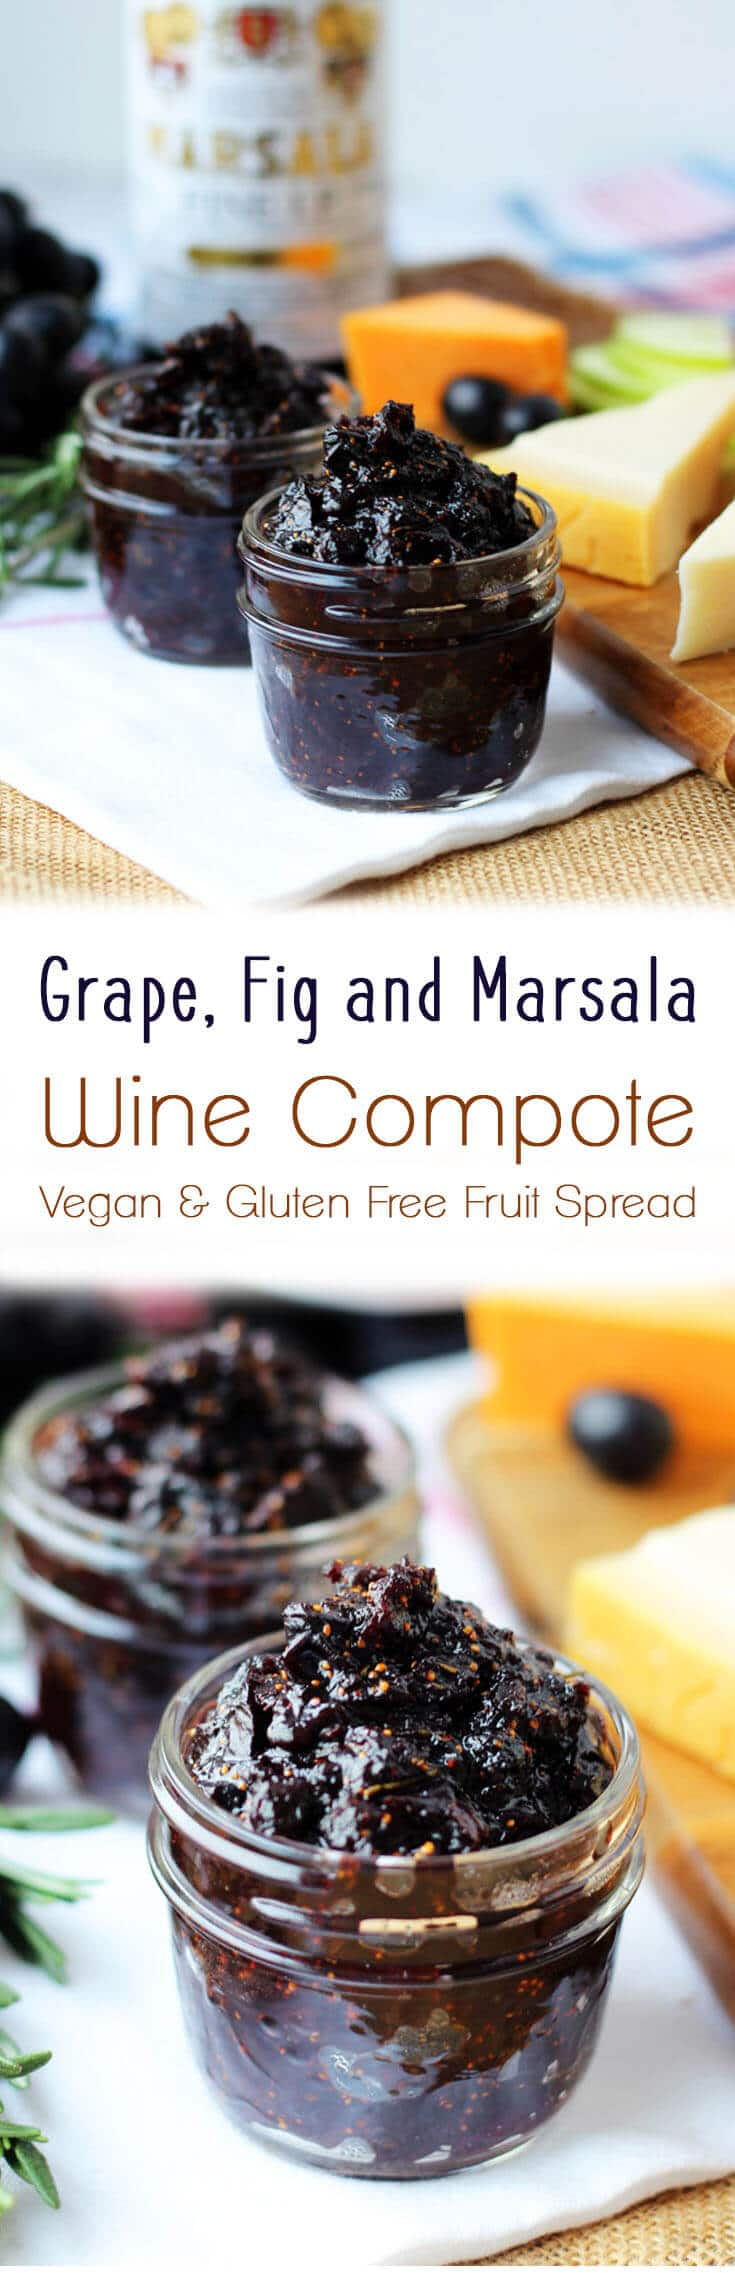 This grape, fig and marsala wine compote is a naturally vegan, gluten free fruit spread accompaniment with crackers or cheese.